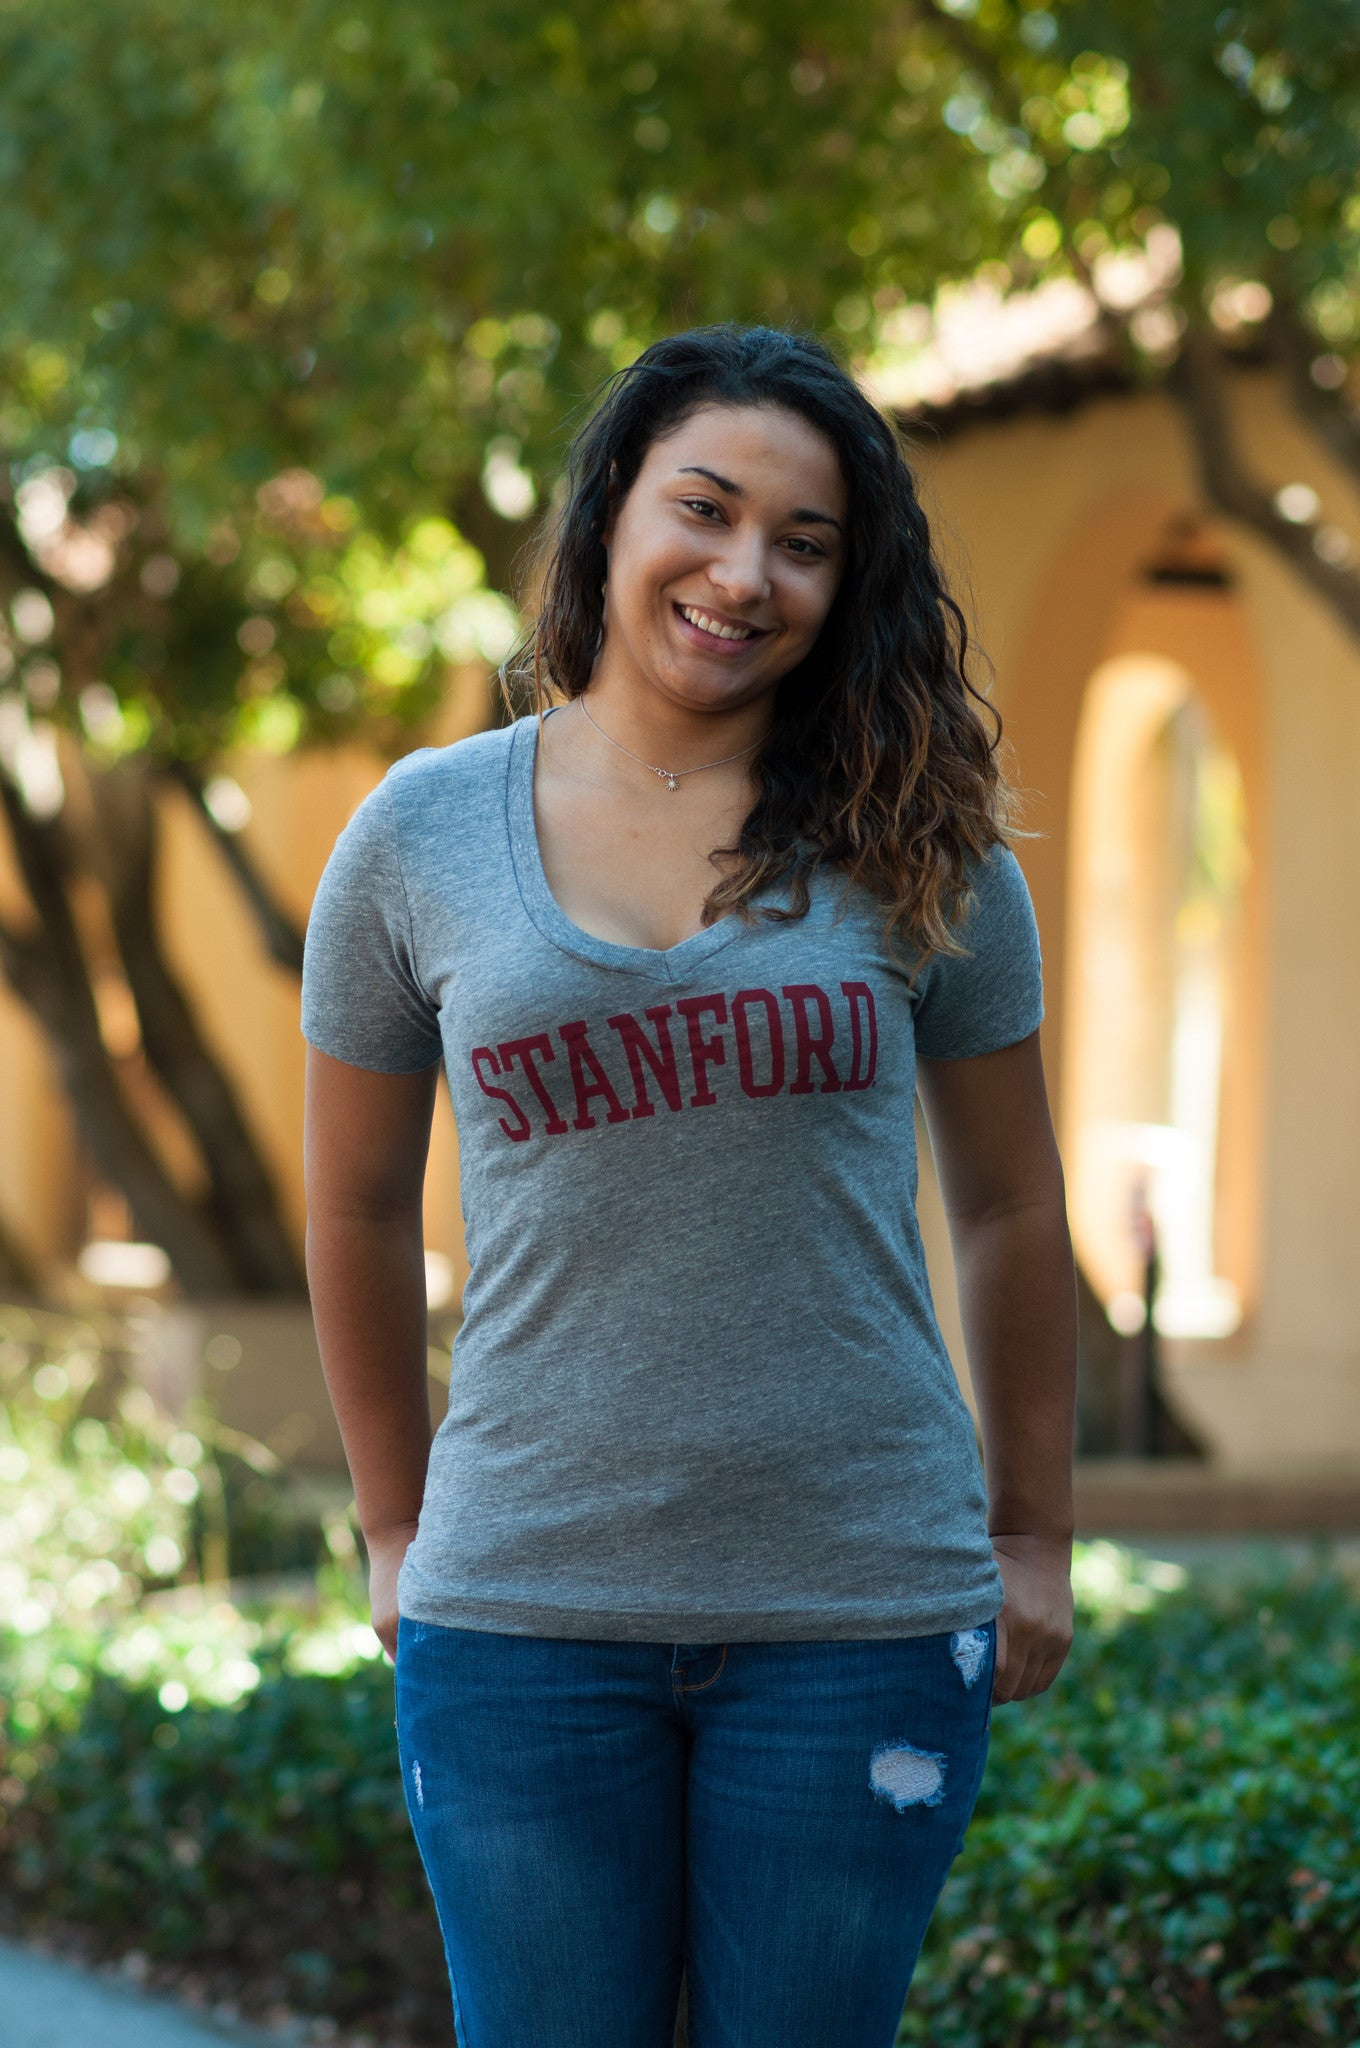 My Favorite V-Tee - Stanford Student Store